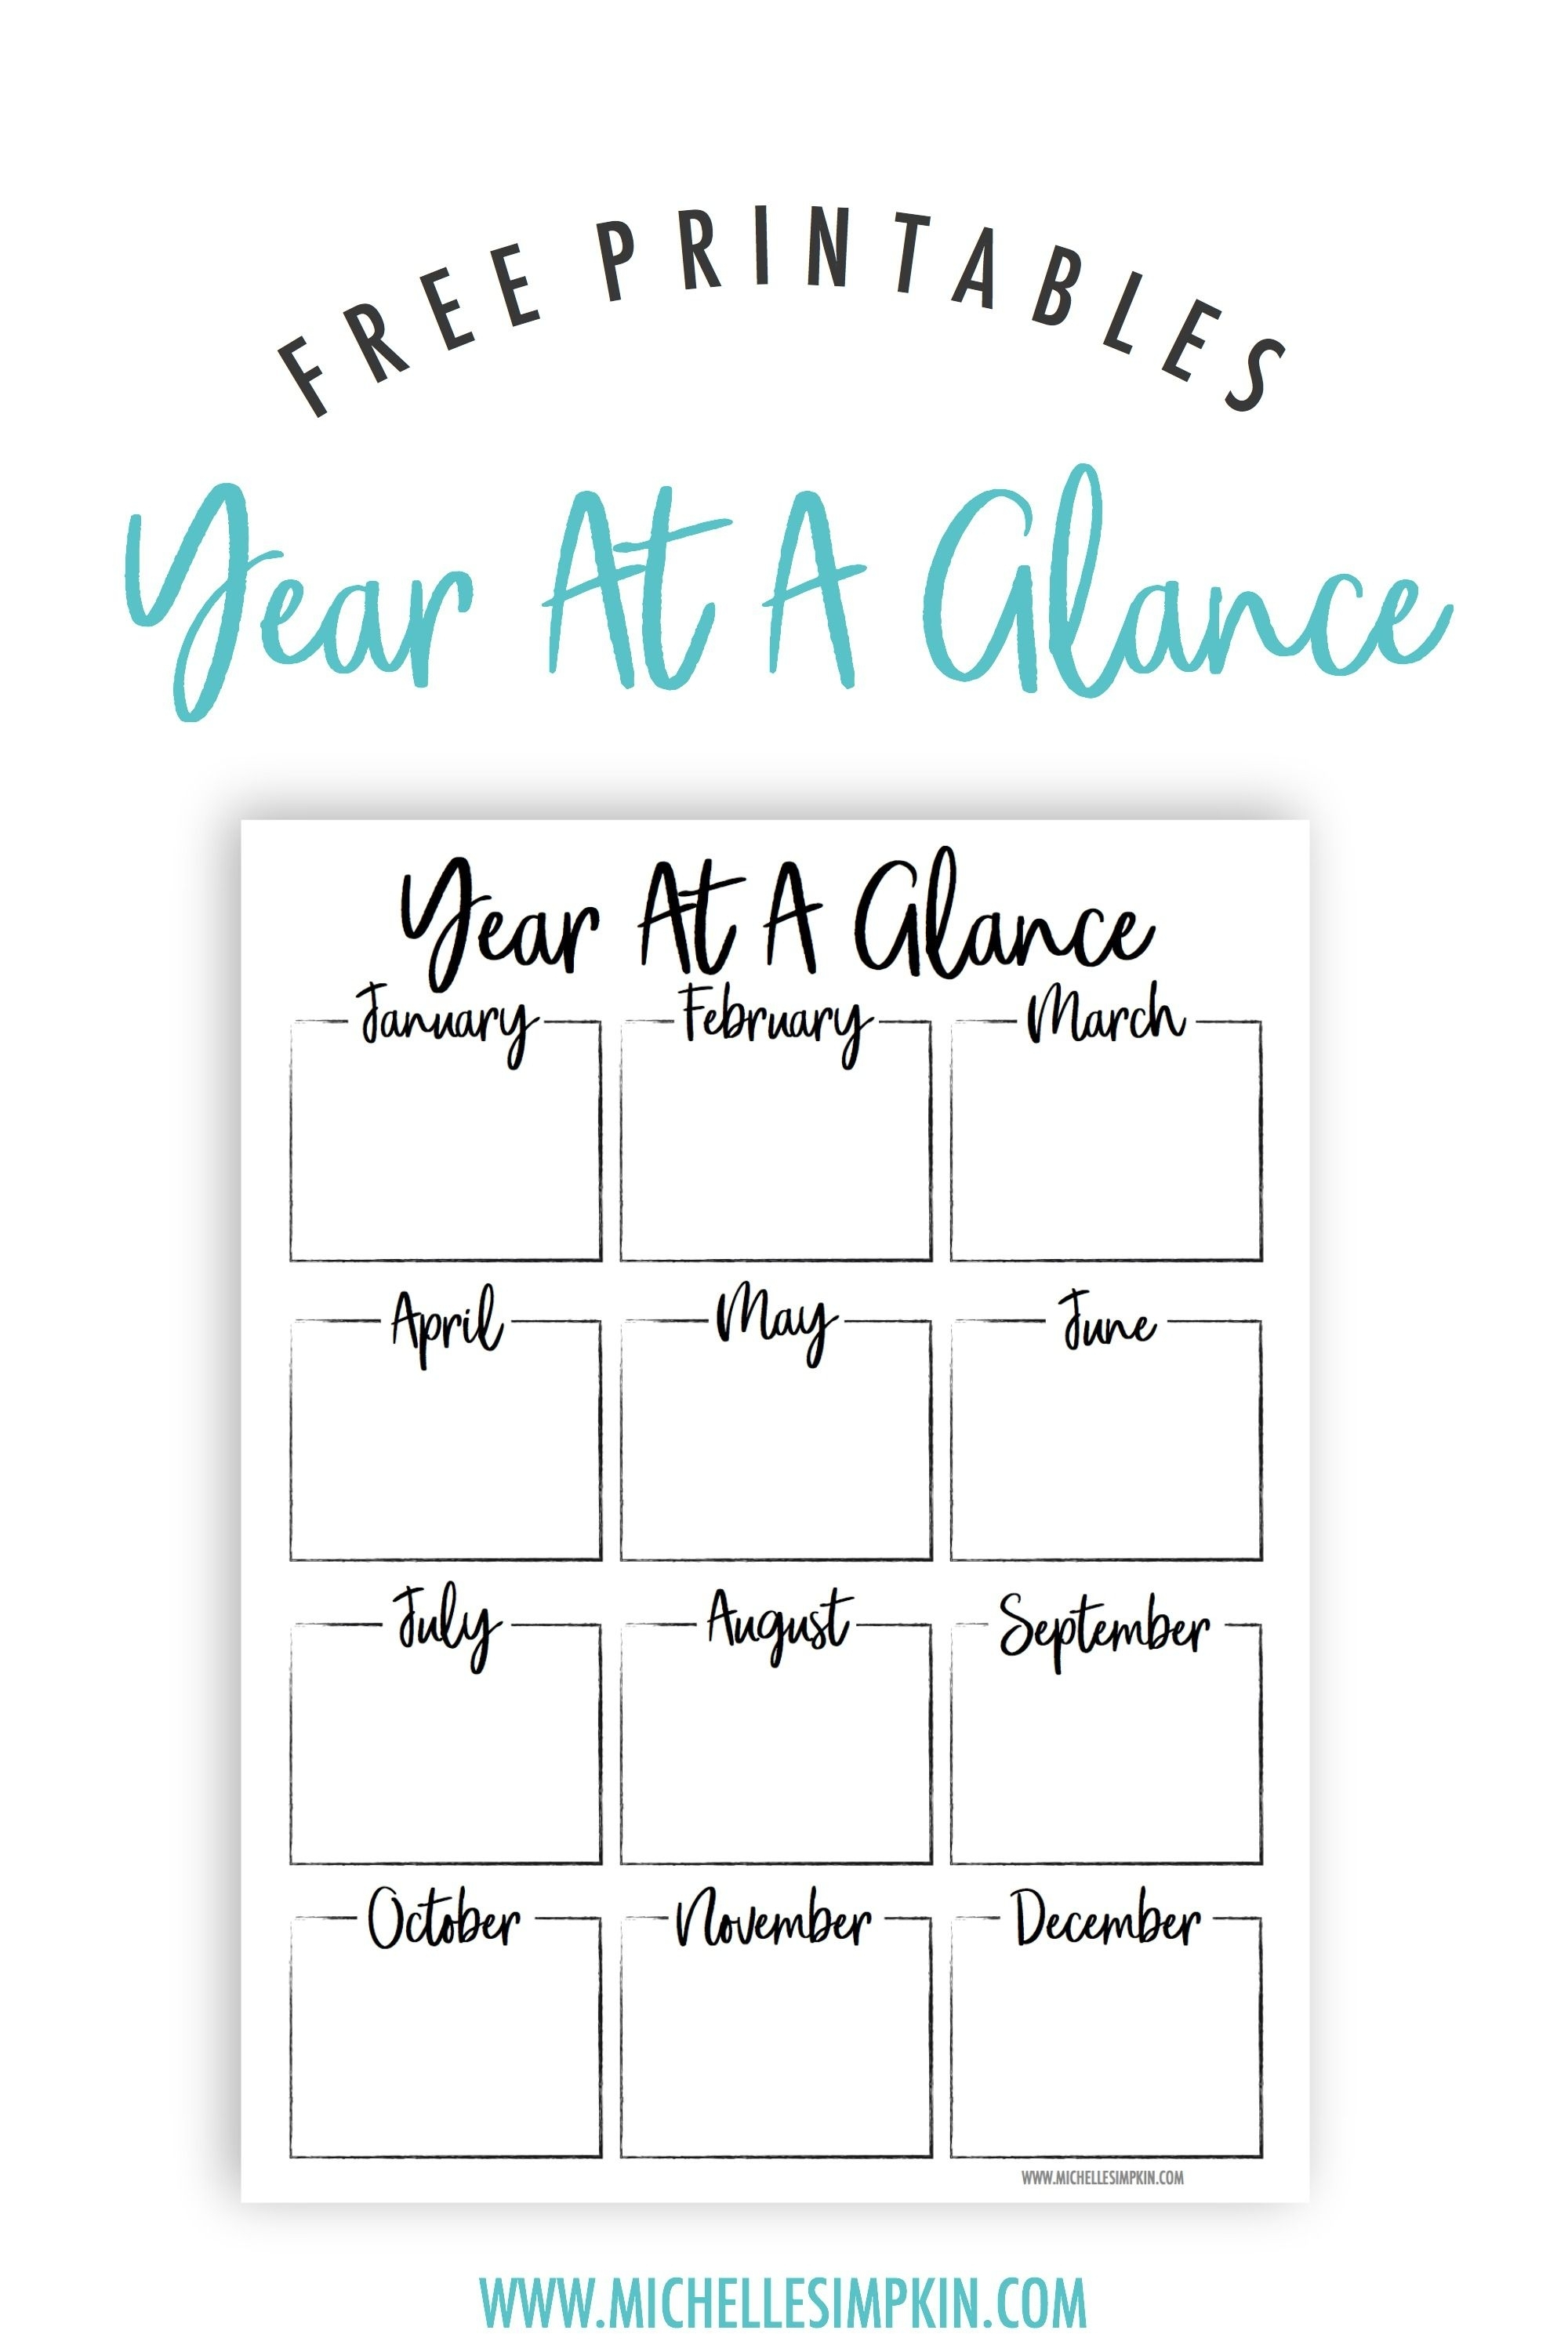 Free Printable - This Year At A Glance Printable Will Help You Plan with Year At A Glance Printable